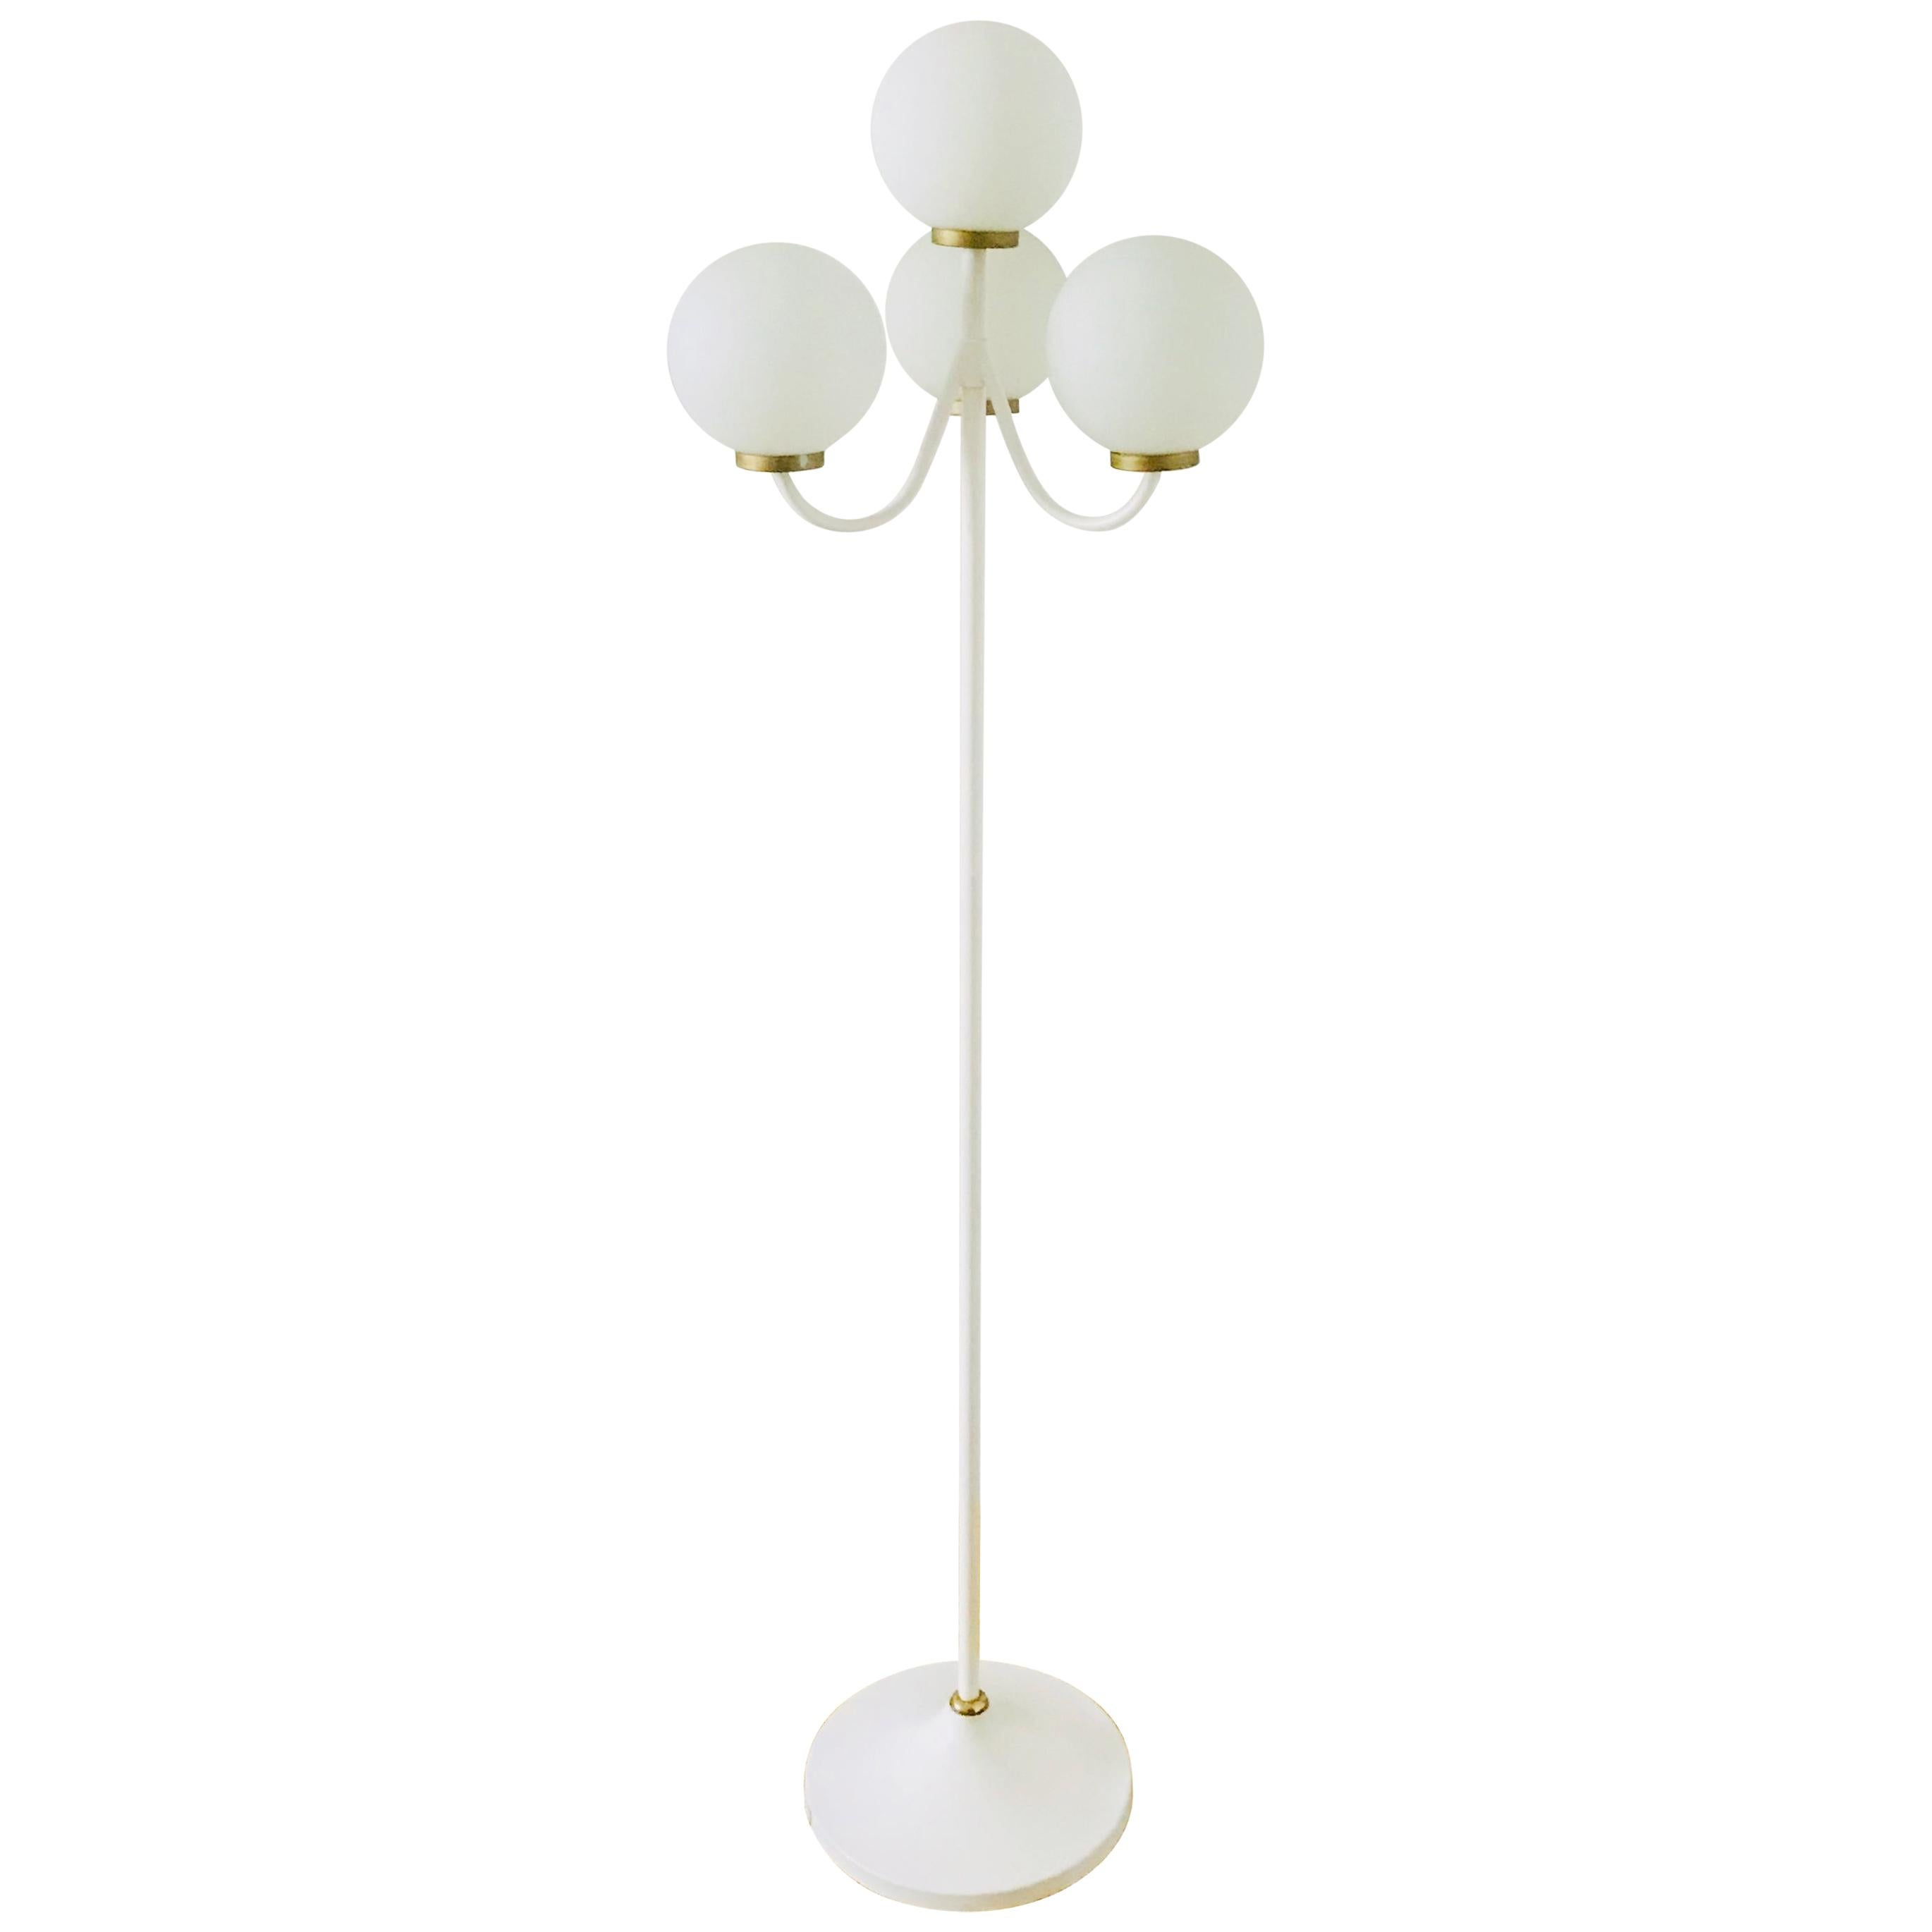 Kaiser Midcentury Brass and White 4-Arm Space Age Floor Lamp, 1960s, Germany